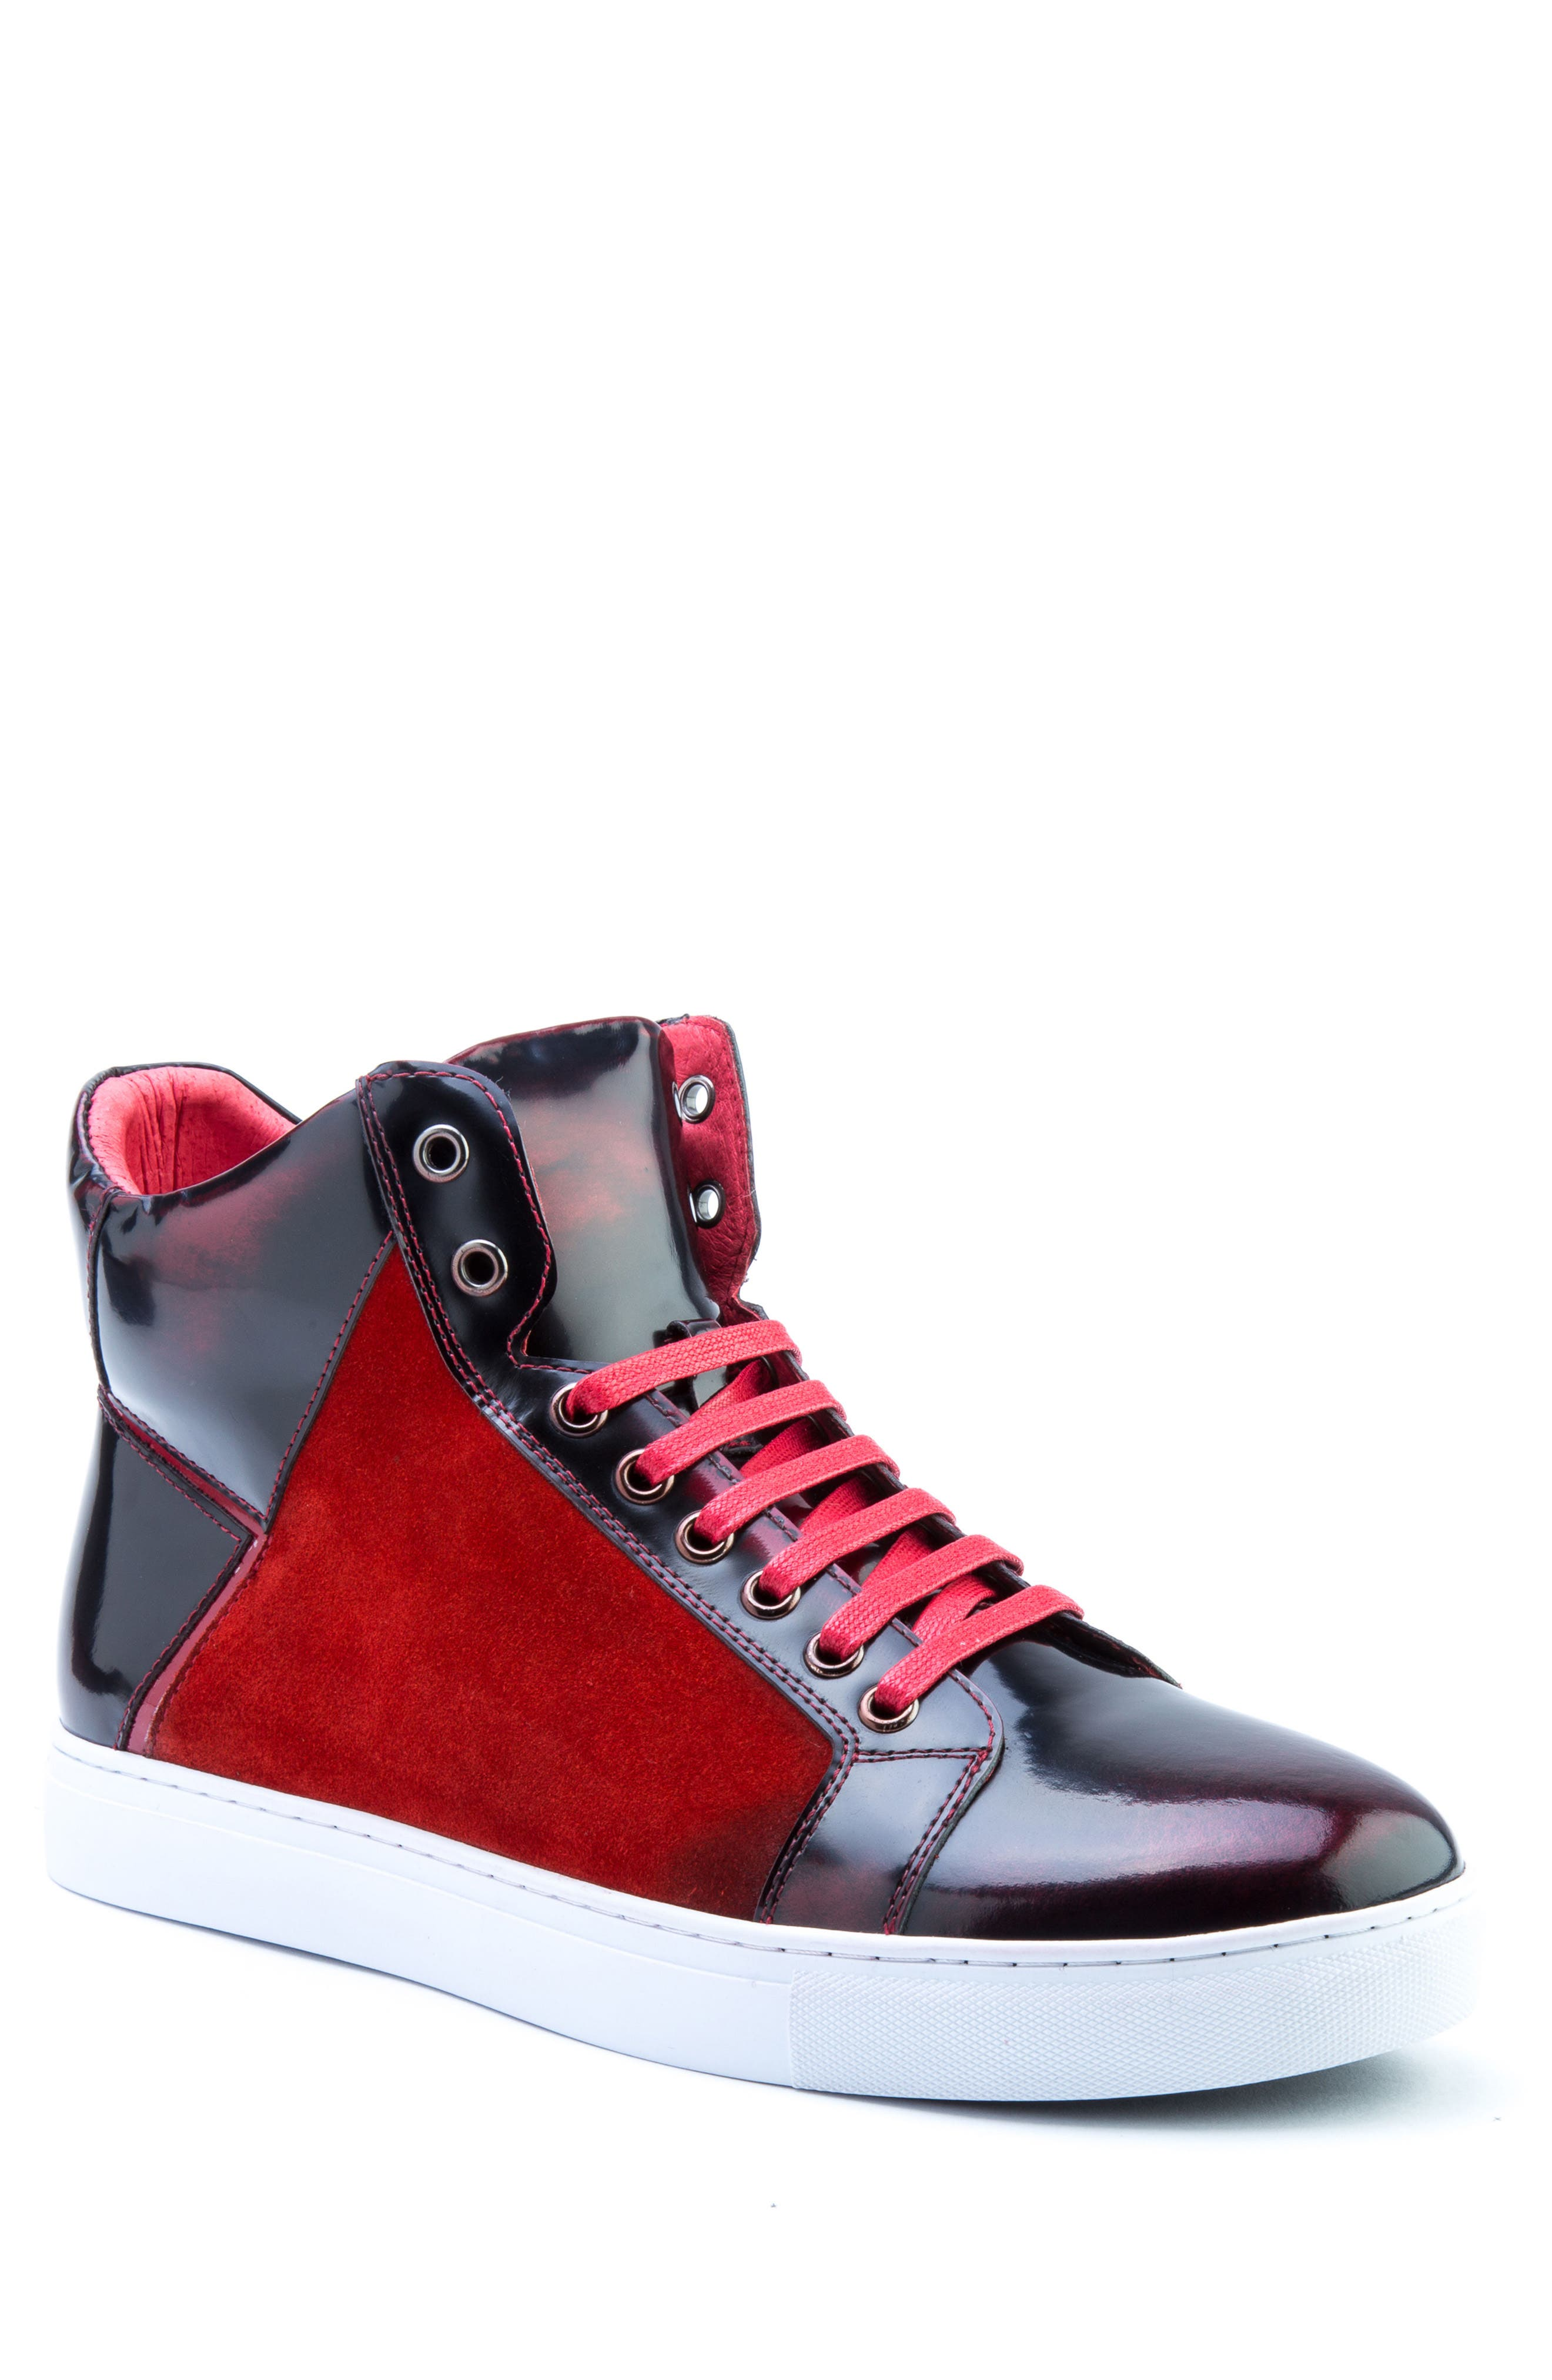 Douglas High Top Sneaker,                         Main,                         color, RED LEATHER